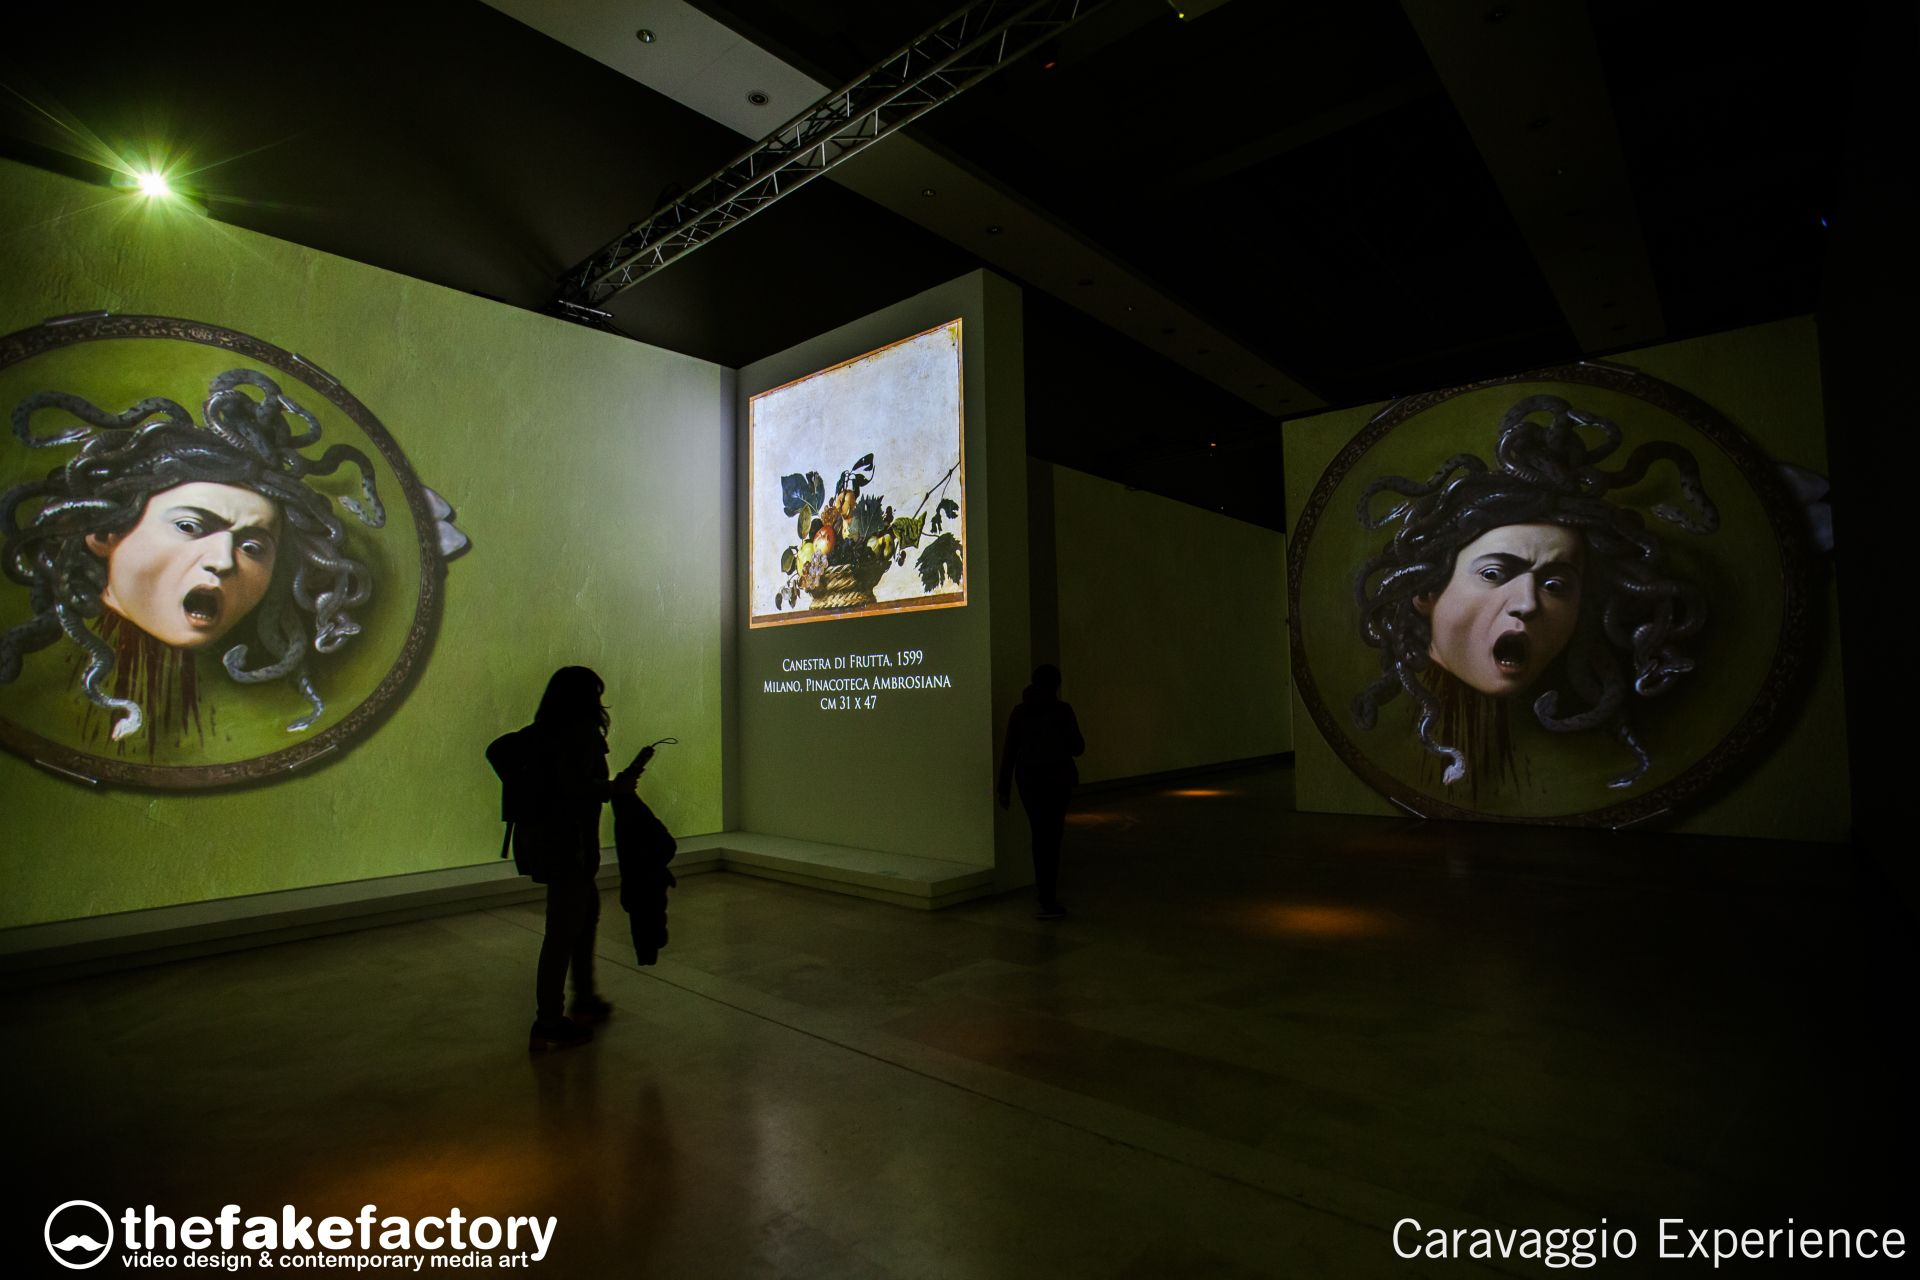 CARAVAGGIO EXPERIENCE - immersive videoart experience designed by videoartist STEFANO FAKE, created at THE FAKE FACTORY studio and produced by MedialART in Florence, Italy.  #caravaggioexperience #CaravaggioExperience #caravaggio #thefakefactory #immersiveartexperience #videoarte #immersiveexperience #stefanofake #videoart #palazzoesposizioni #roma #canon